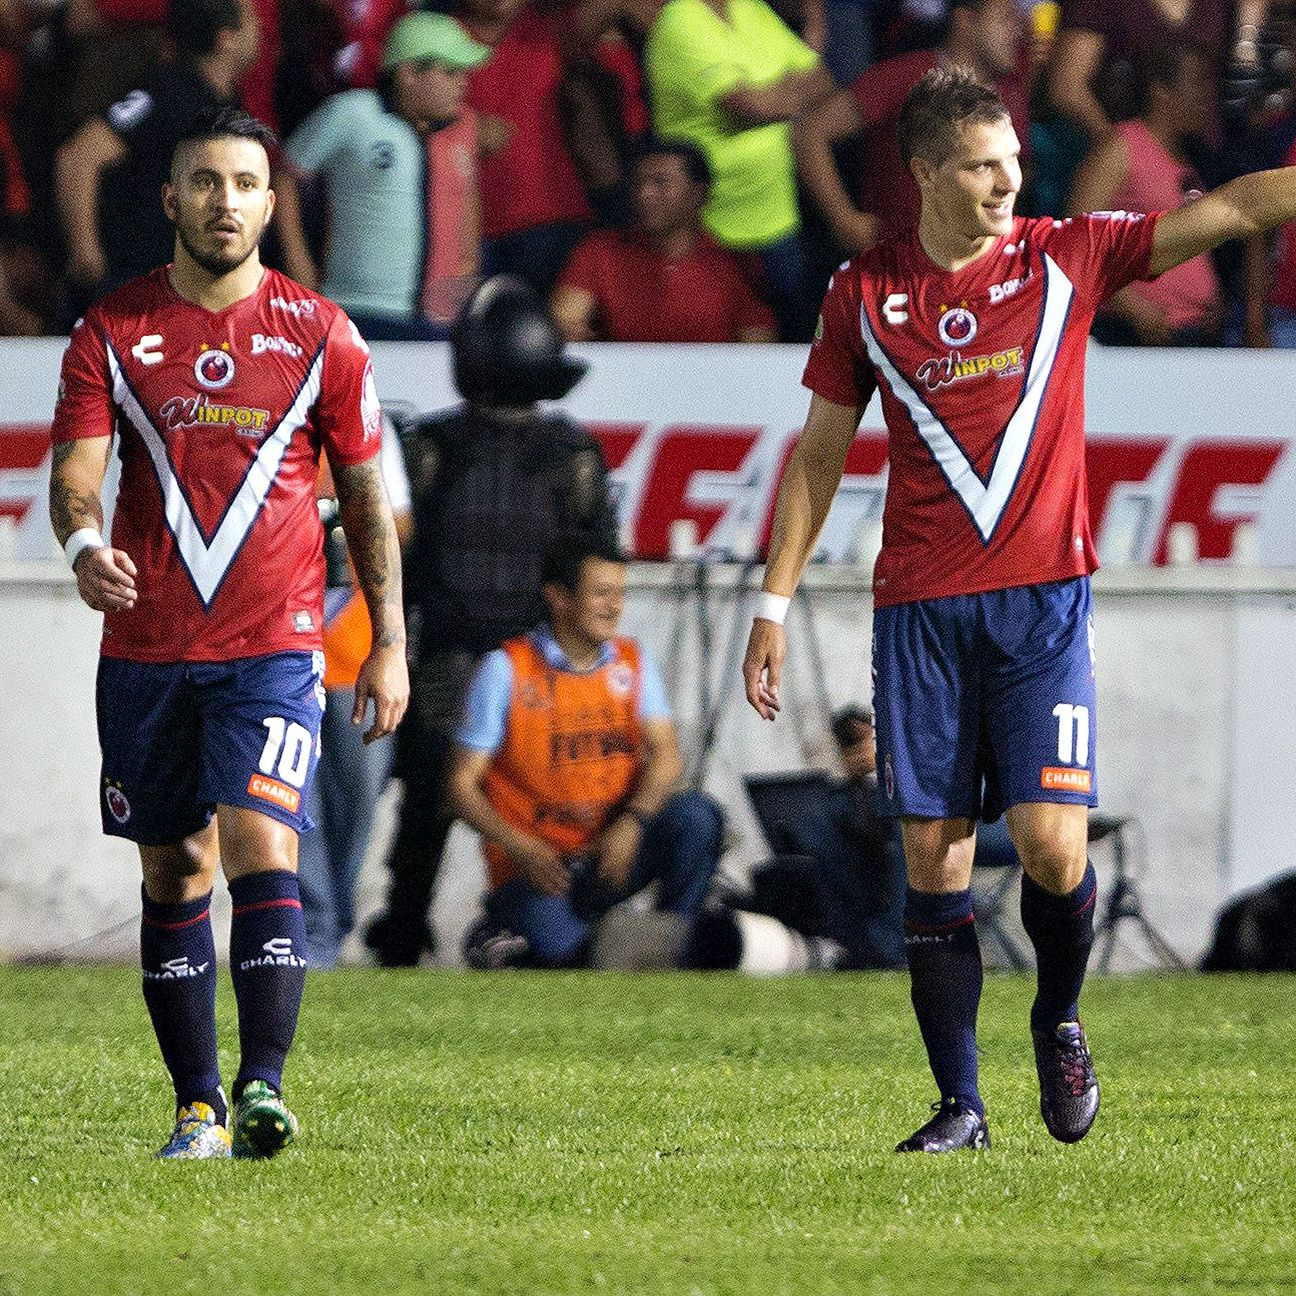 Julio Furch, right, led the charge in Veracruz's walloping of Club America.